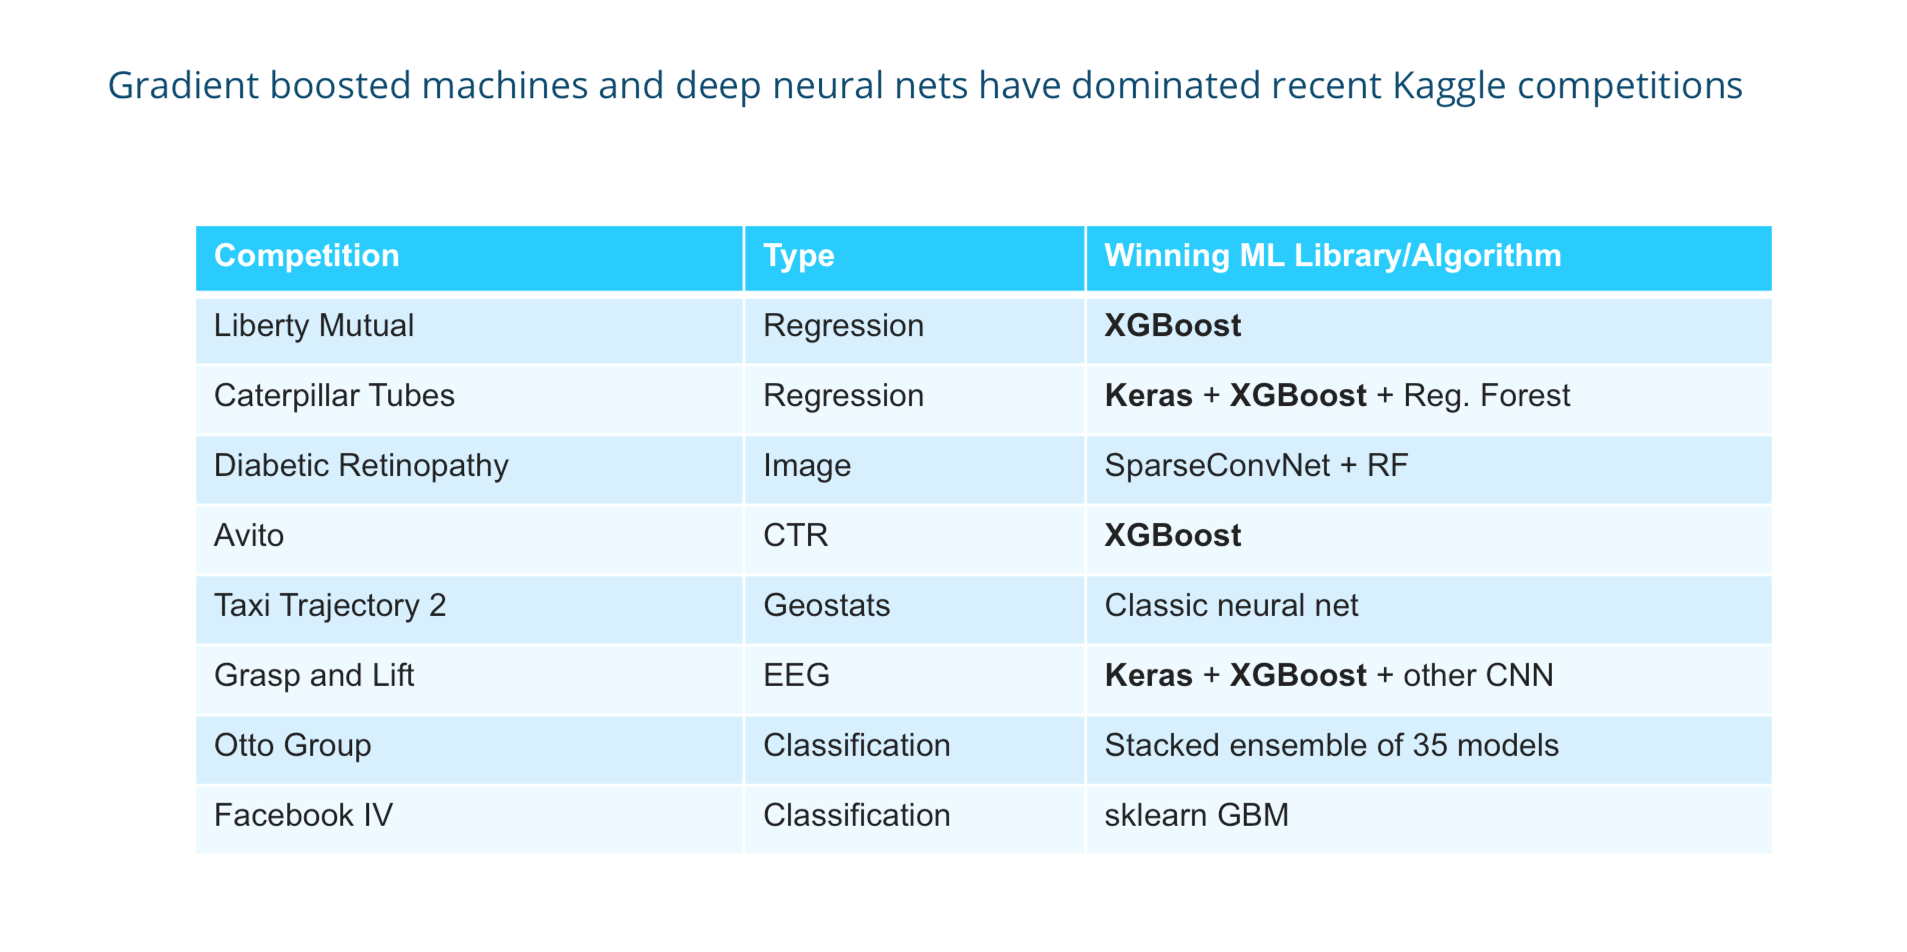 What machine learning approaches have won most Kaggle competitions